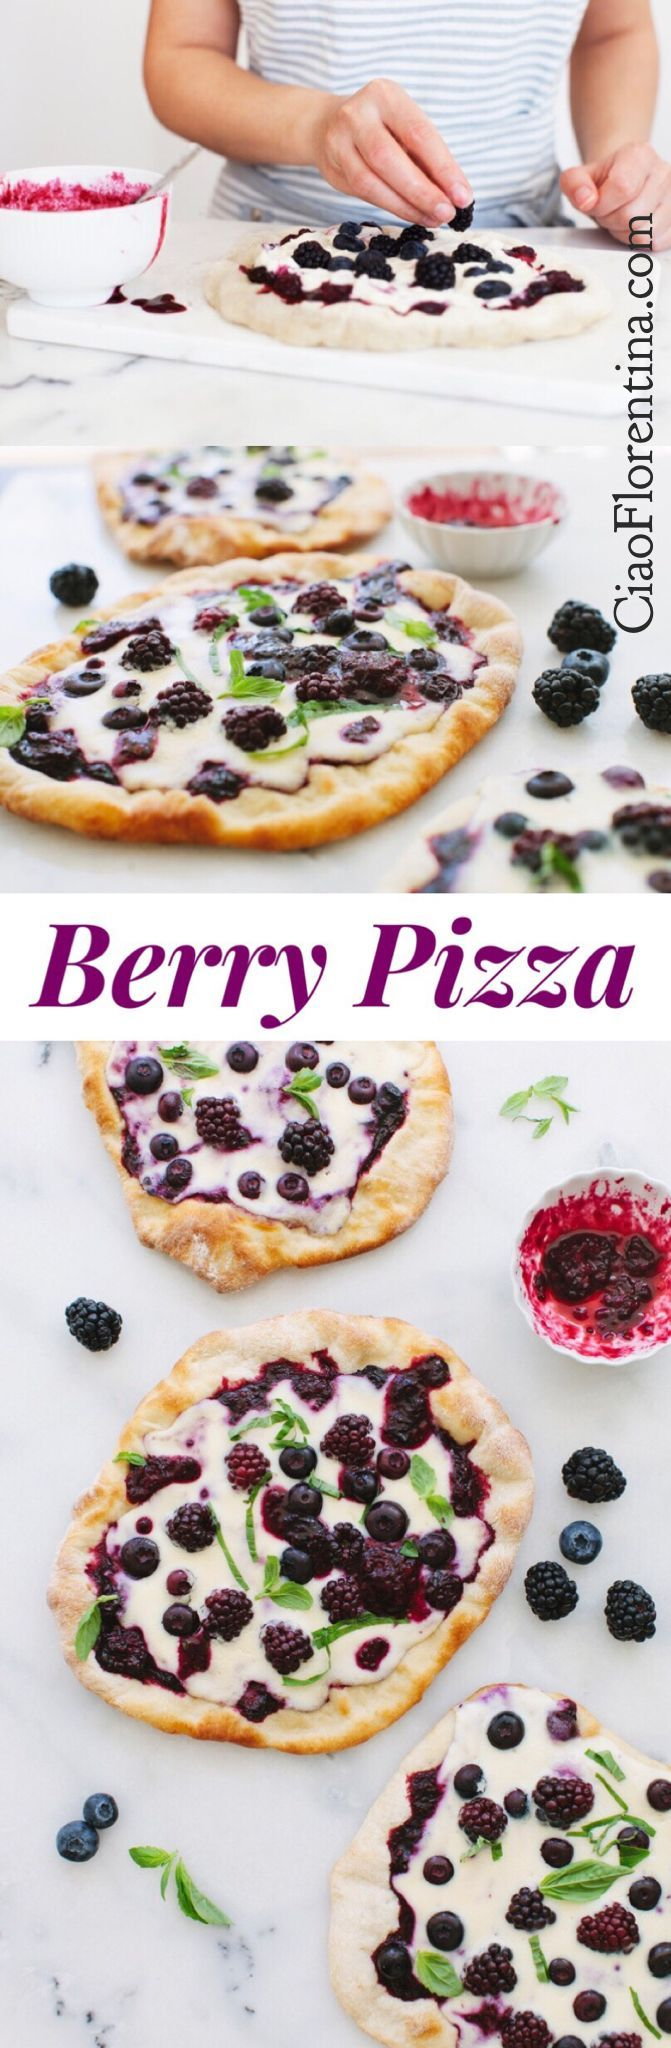 Berry Pizza with Whipped Ricotta and Mascarpone Cheese and a Blueberry Blackberry Sauce   CiaoFlorentina.com @CiaoFlorentina